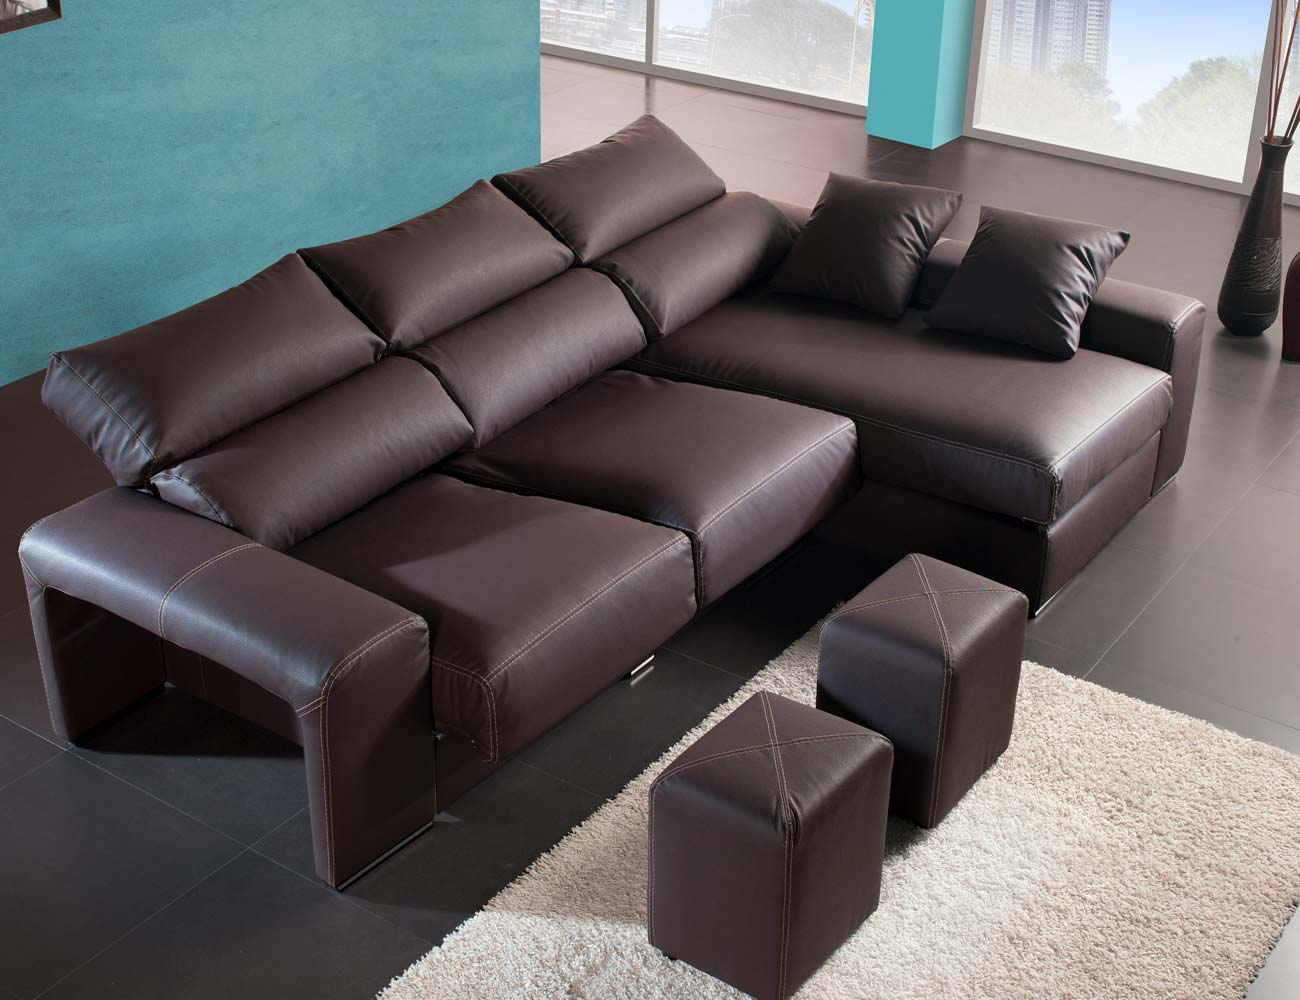 Sofa chaiselongue moderno polipiel chocolate poufs taburetes39